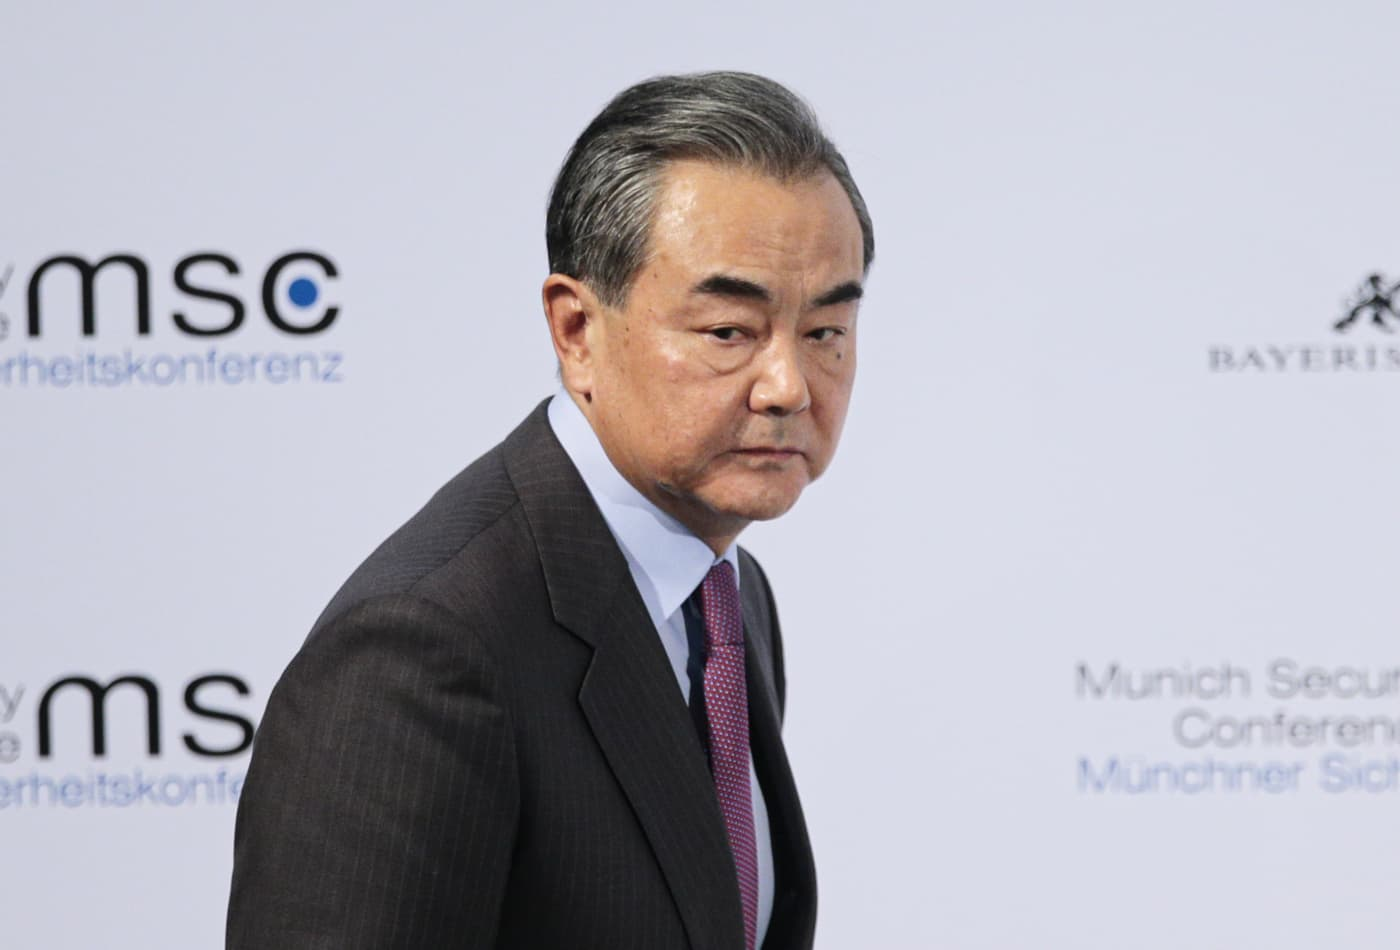 US officials' warnings about China are 'lies, not based on facts,' foreign minister says